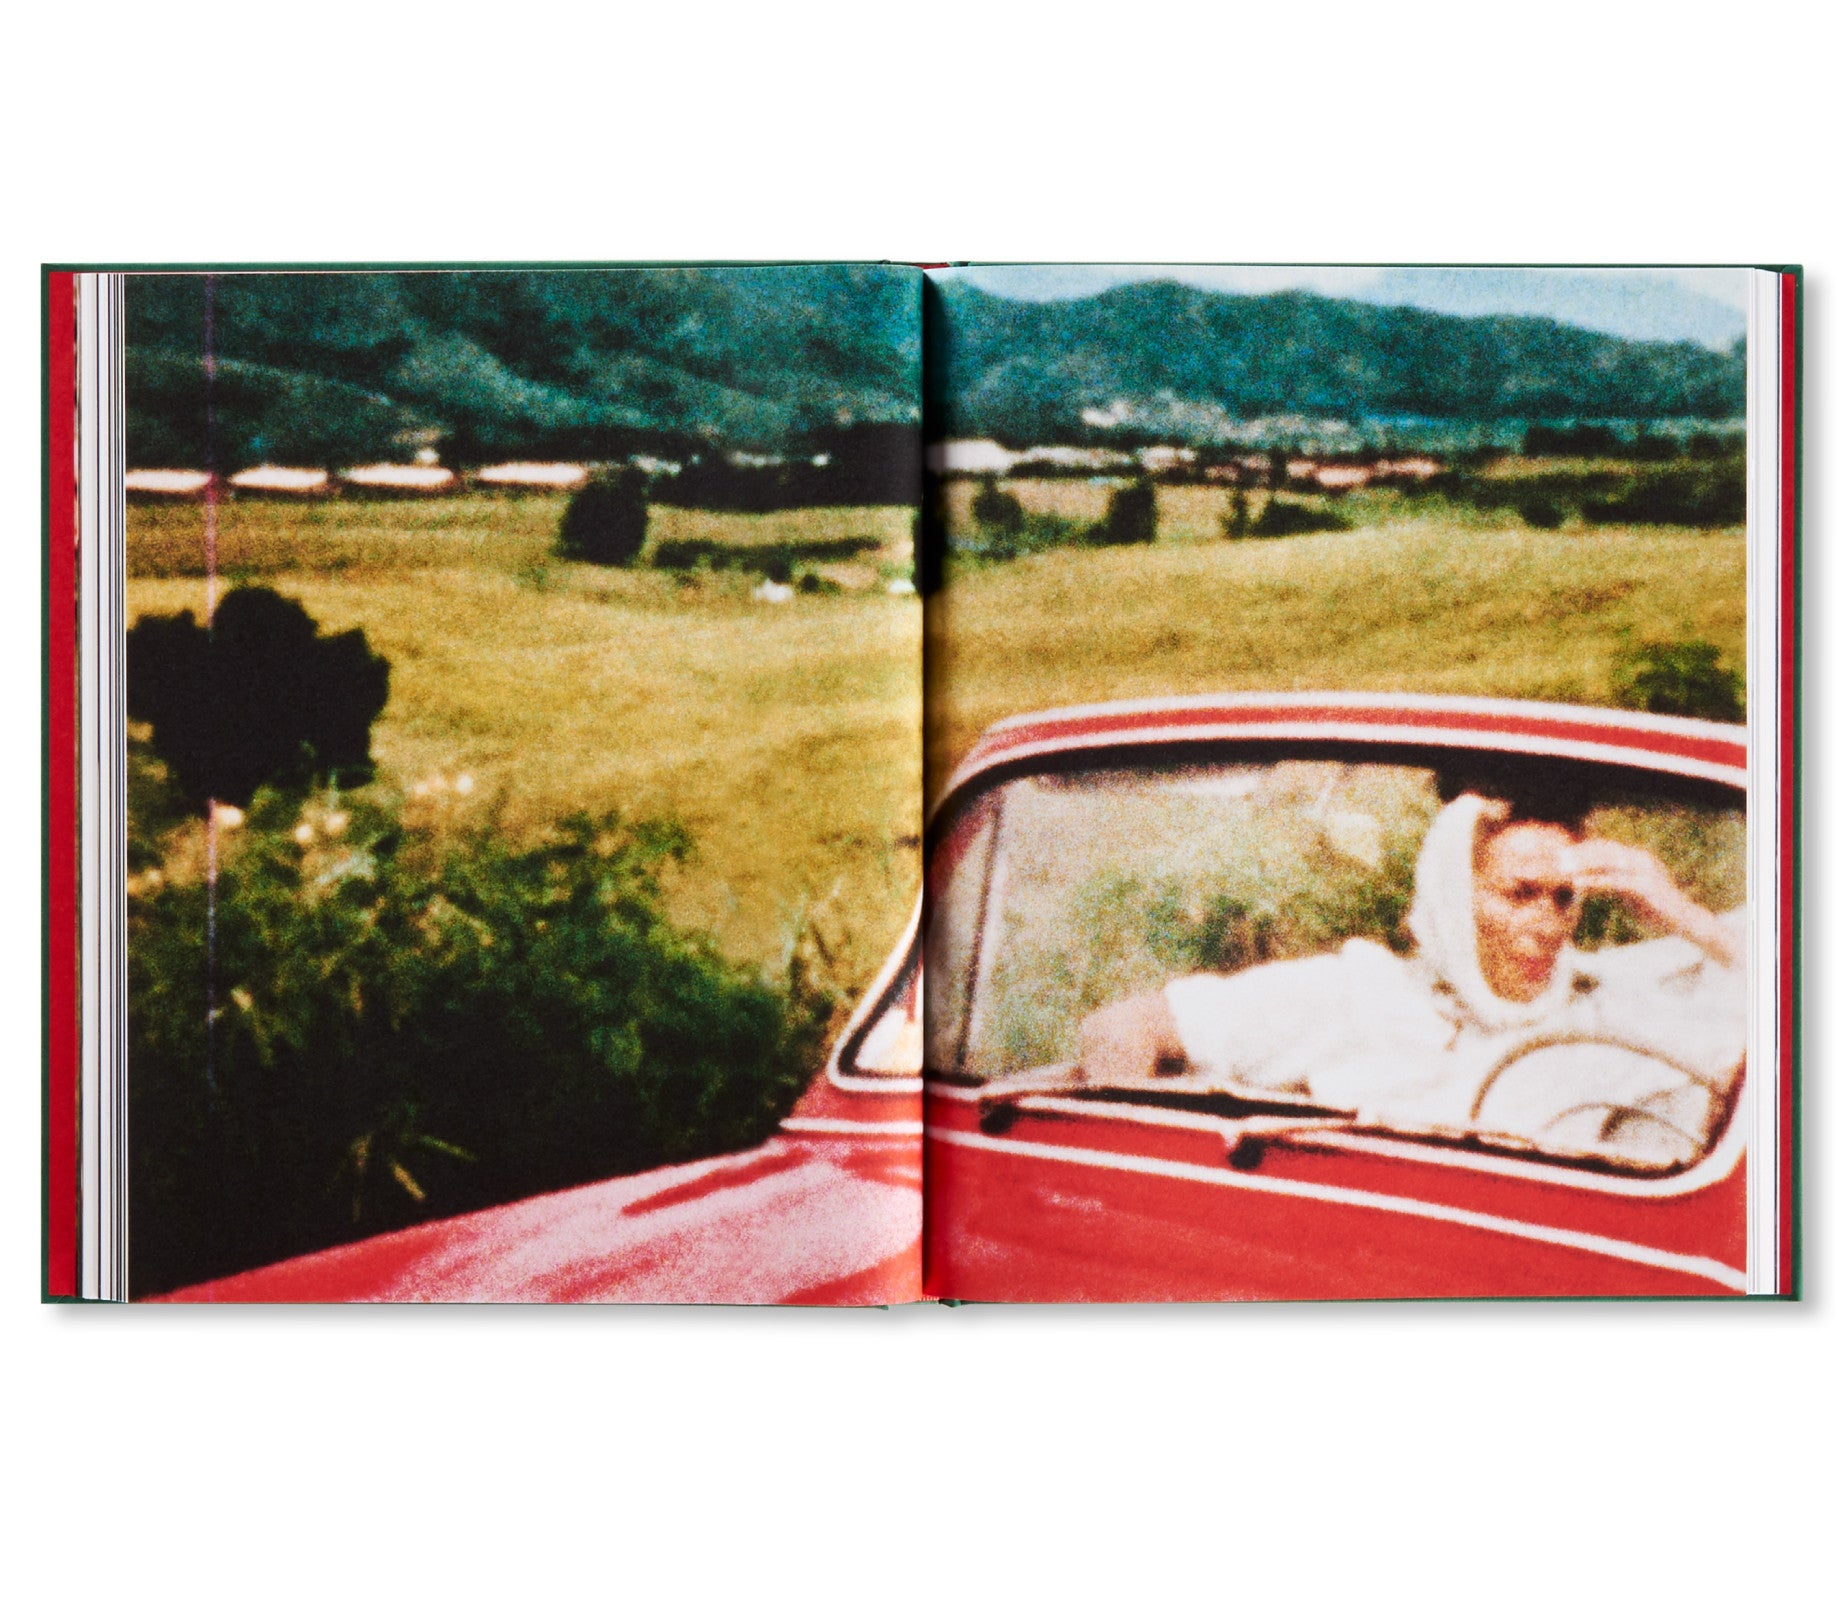 larry sultan pictures from home pdf